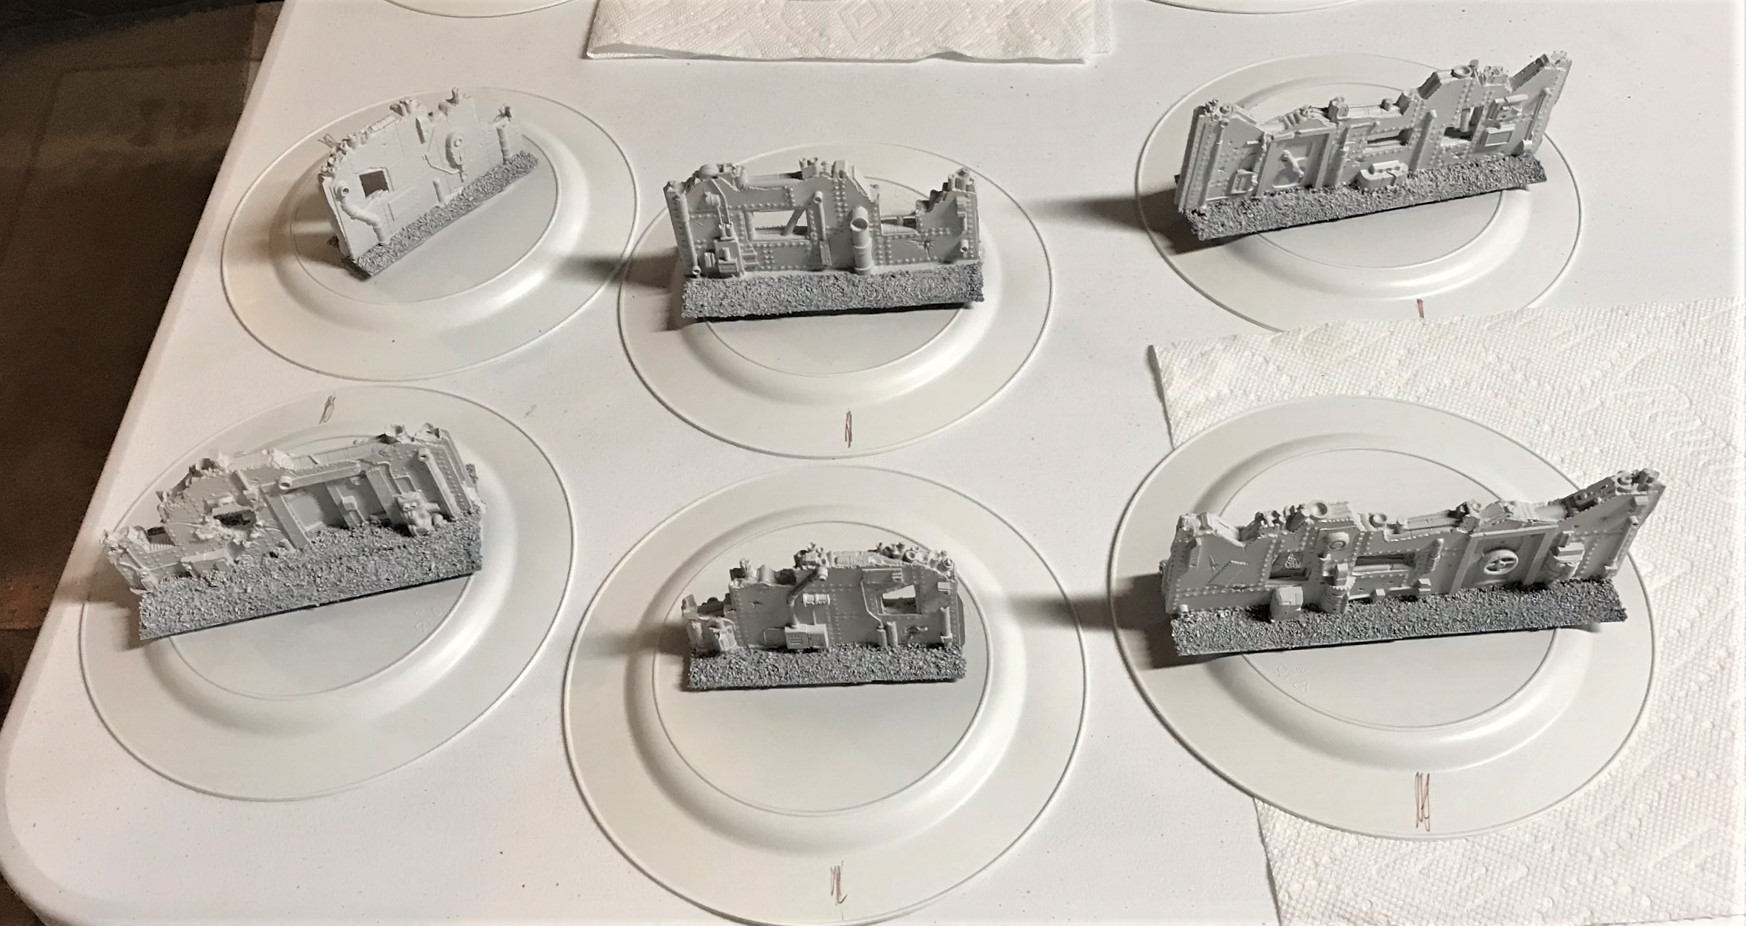 4 on plates and primed